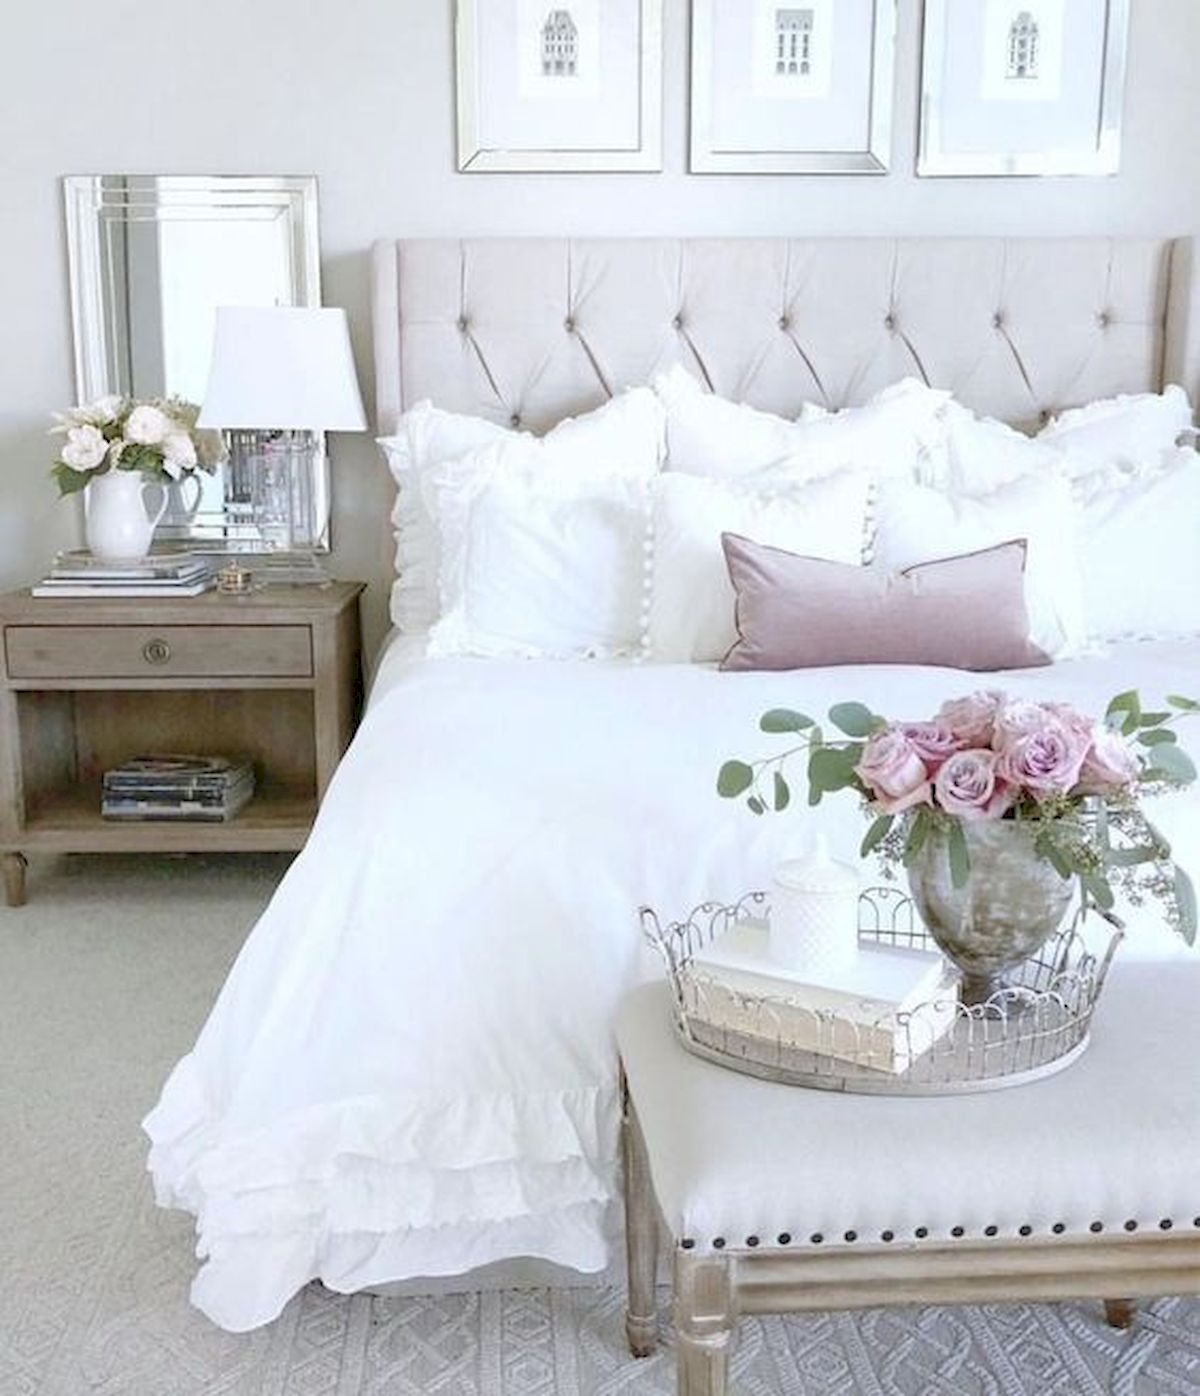 44 Awesome White Master Bedroom Design and Decor Ideas For Any Home Design (36)